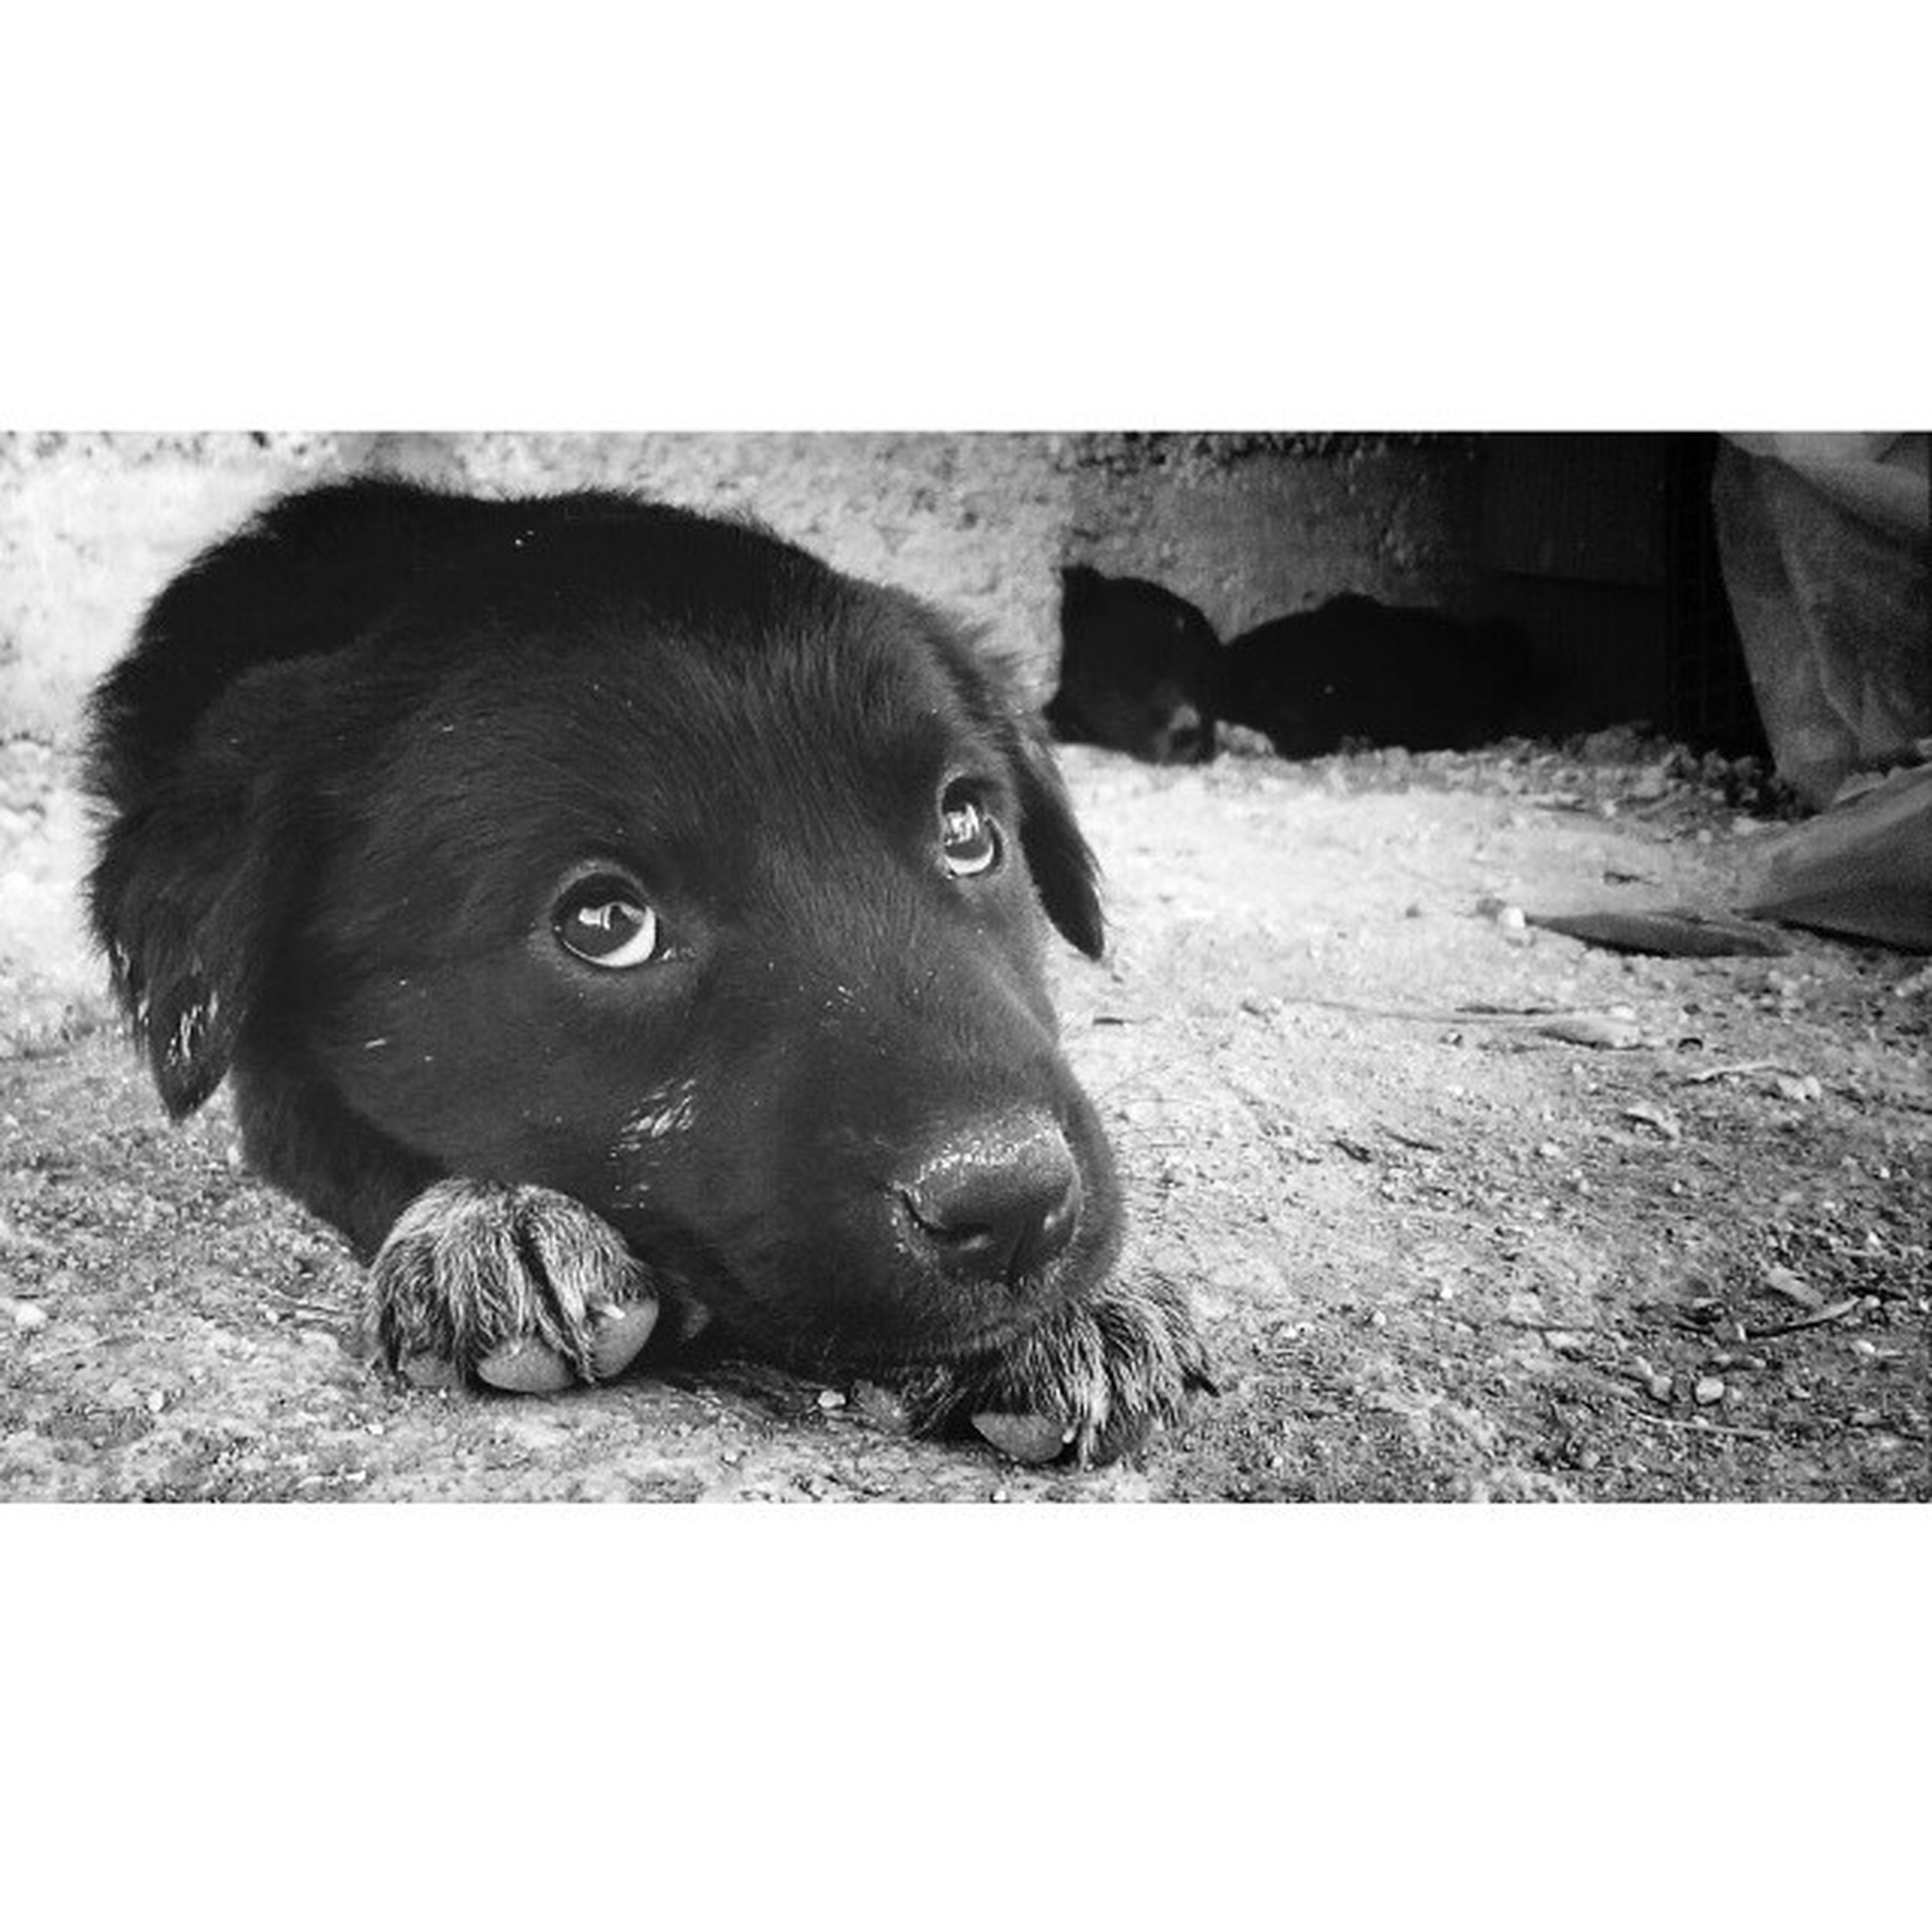 domestic animals, pets, mammal, animal themes, dog, one animal, looking at camera, portrait, transfer print, auto post production filter, relaxation, black color, animal head, lying down, zoology, sitting, close-up, field, resting, no people